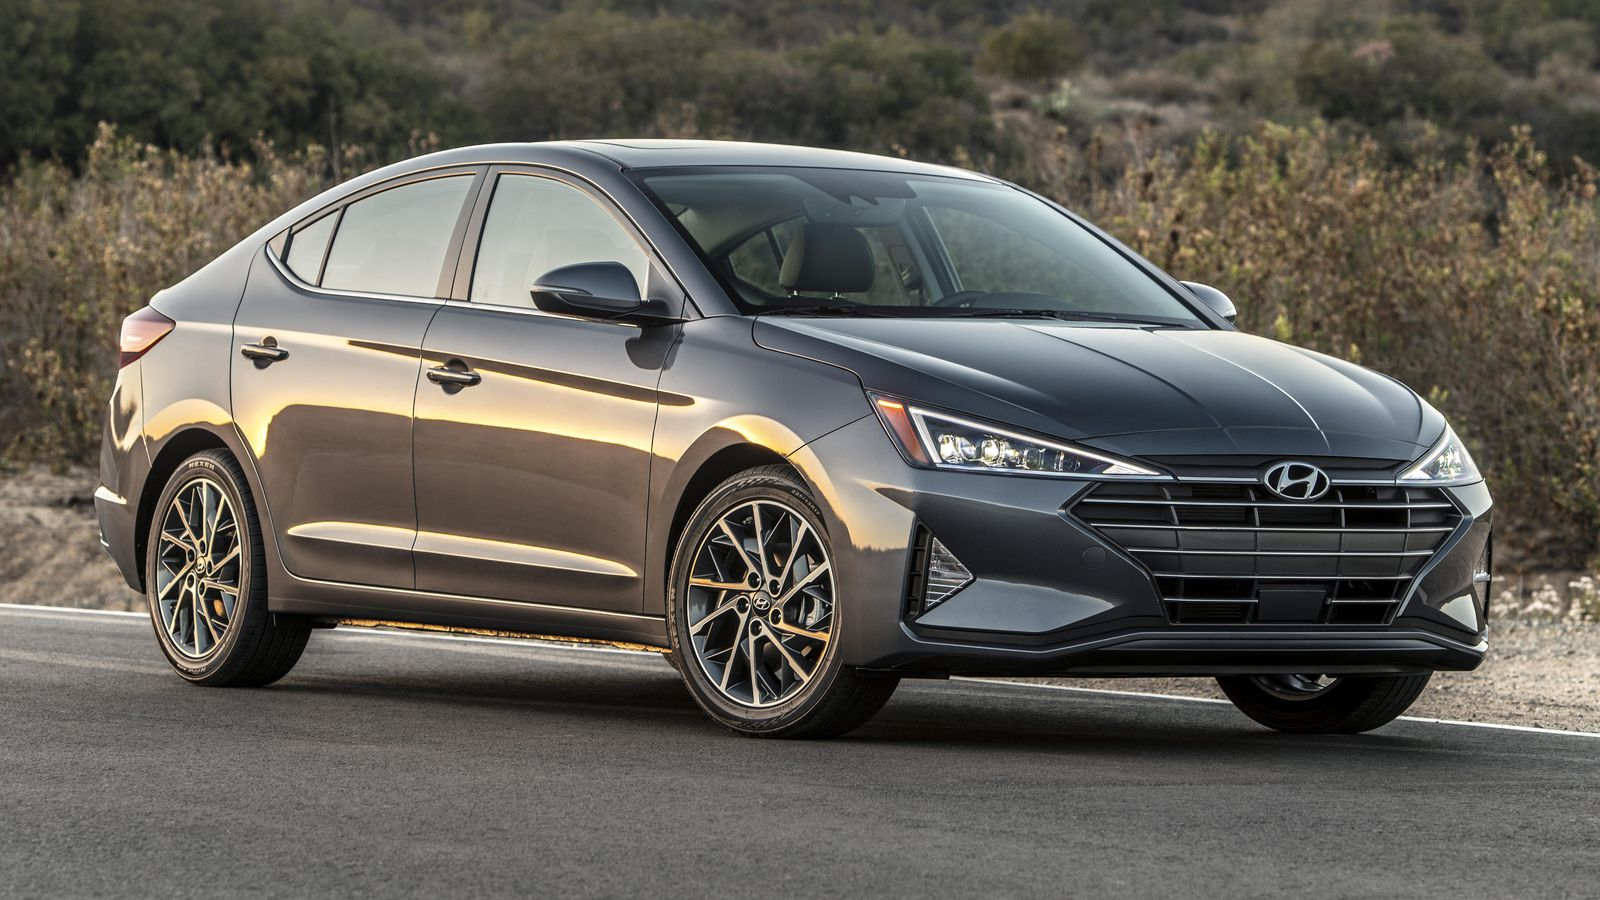 33 The 2019 Hyundai Elantra Sedan Release Date